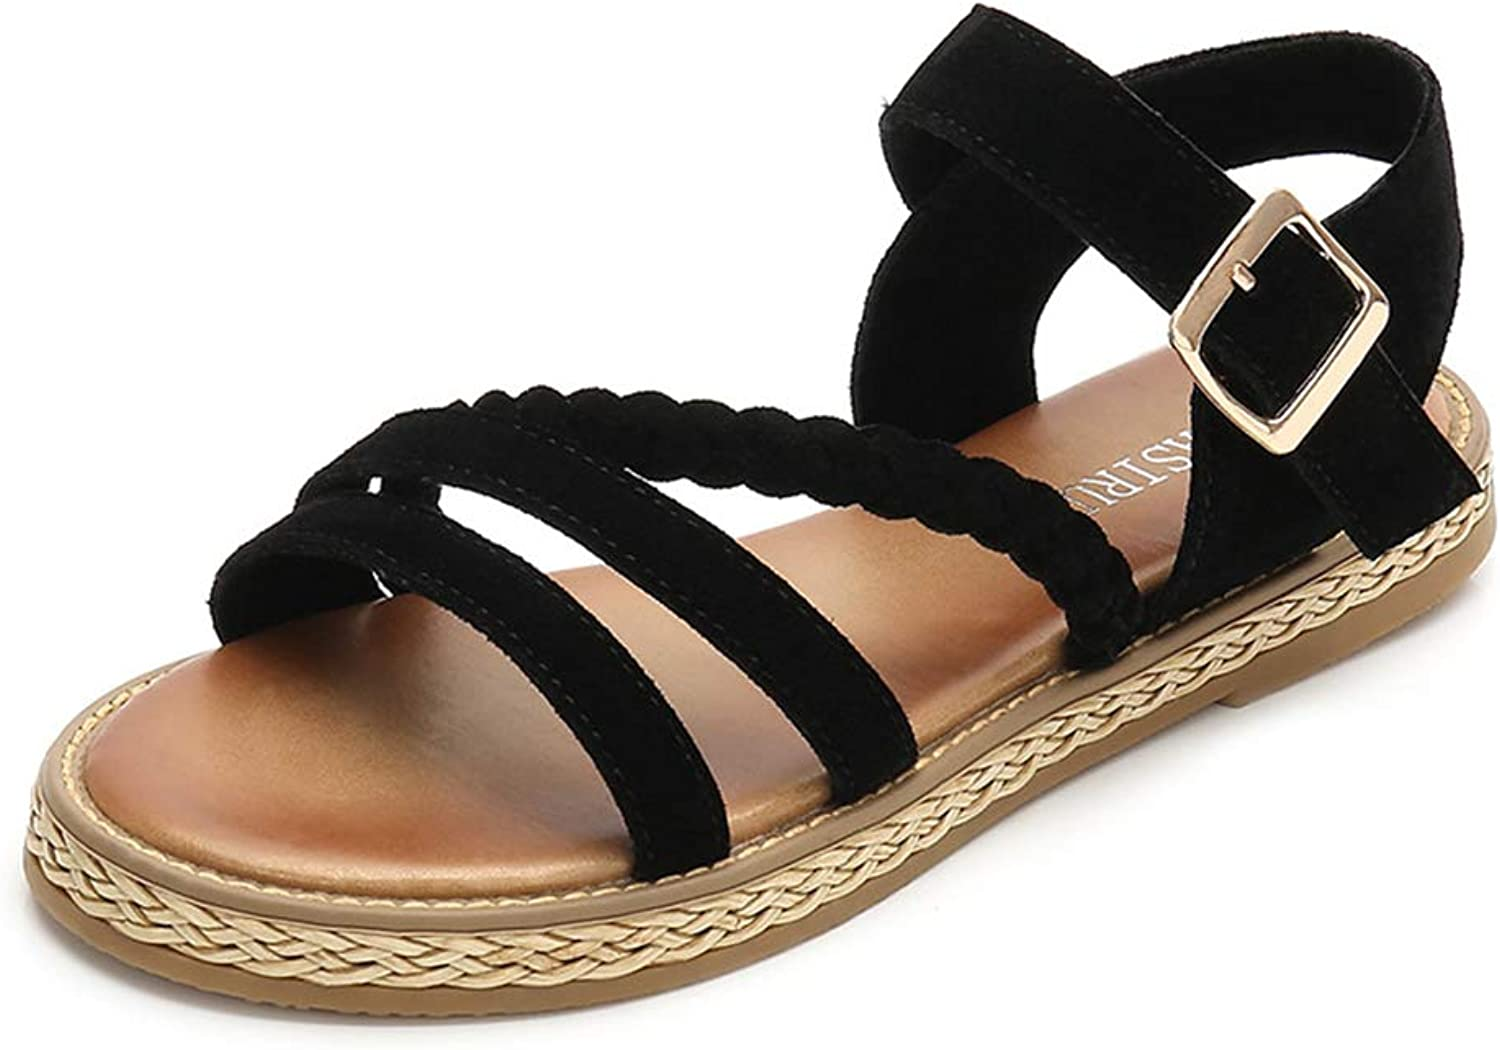 Mobnau Women's Flat Ankle Strap Skidproof Leather Fashion Sandals